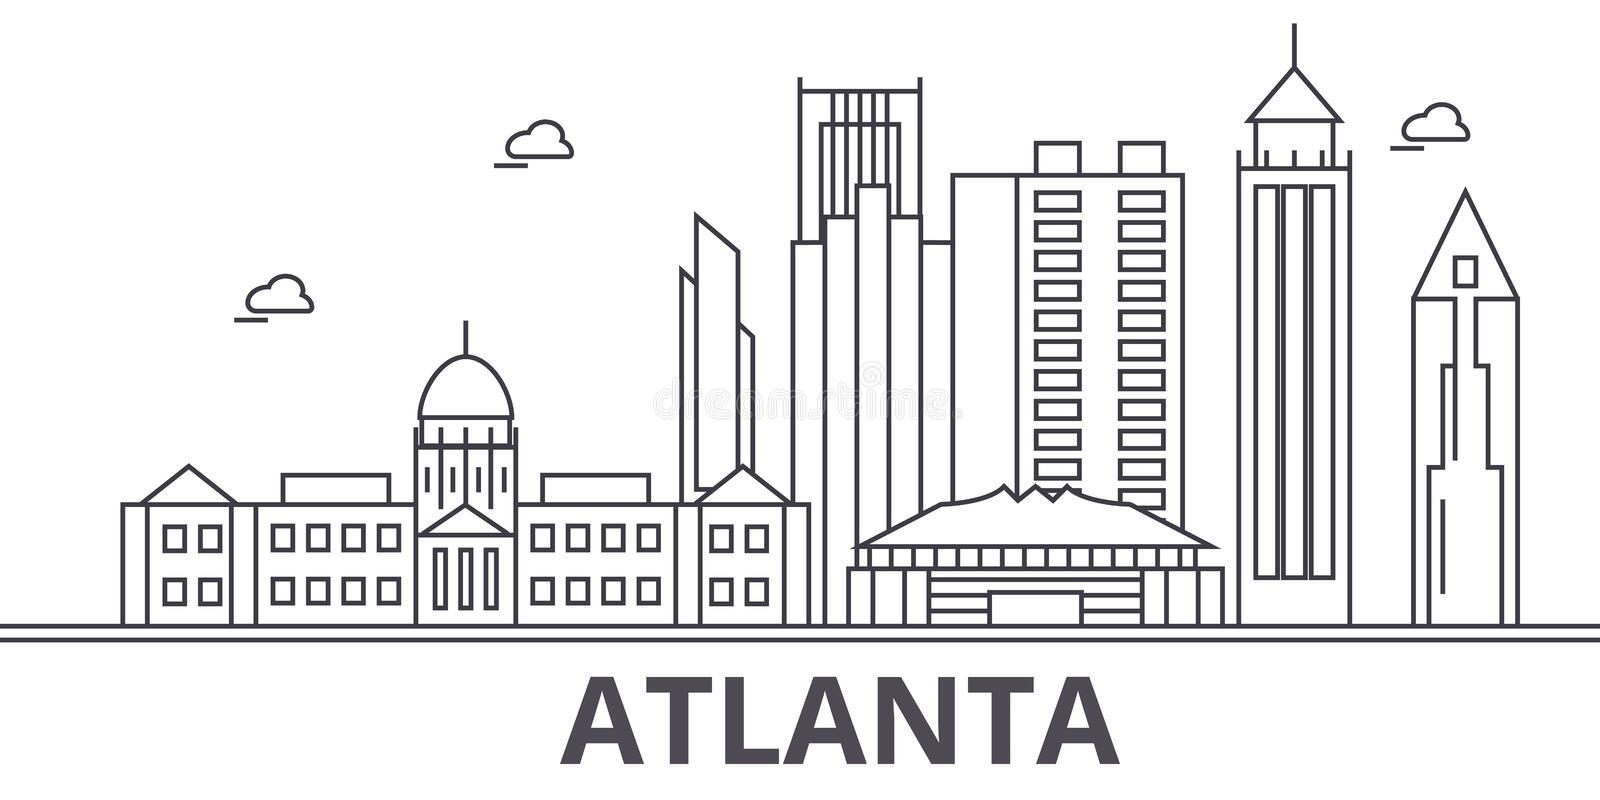 Atlanta architecture line skyline illustration. Linear vector cityscape with famous landmarks, city sights, design icons. Editable strokes vector illustration